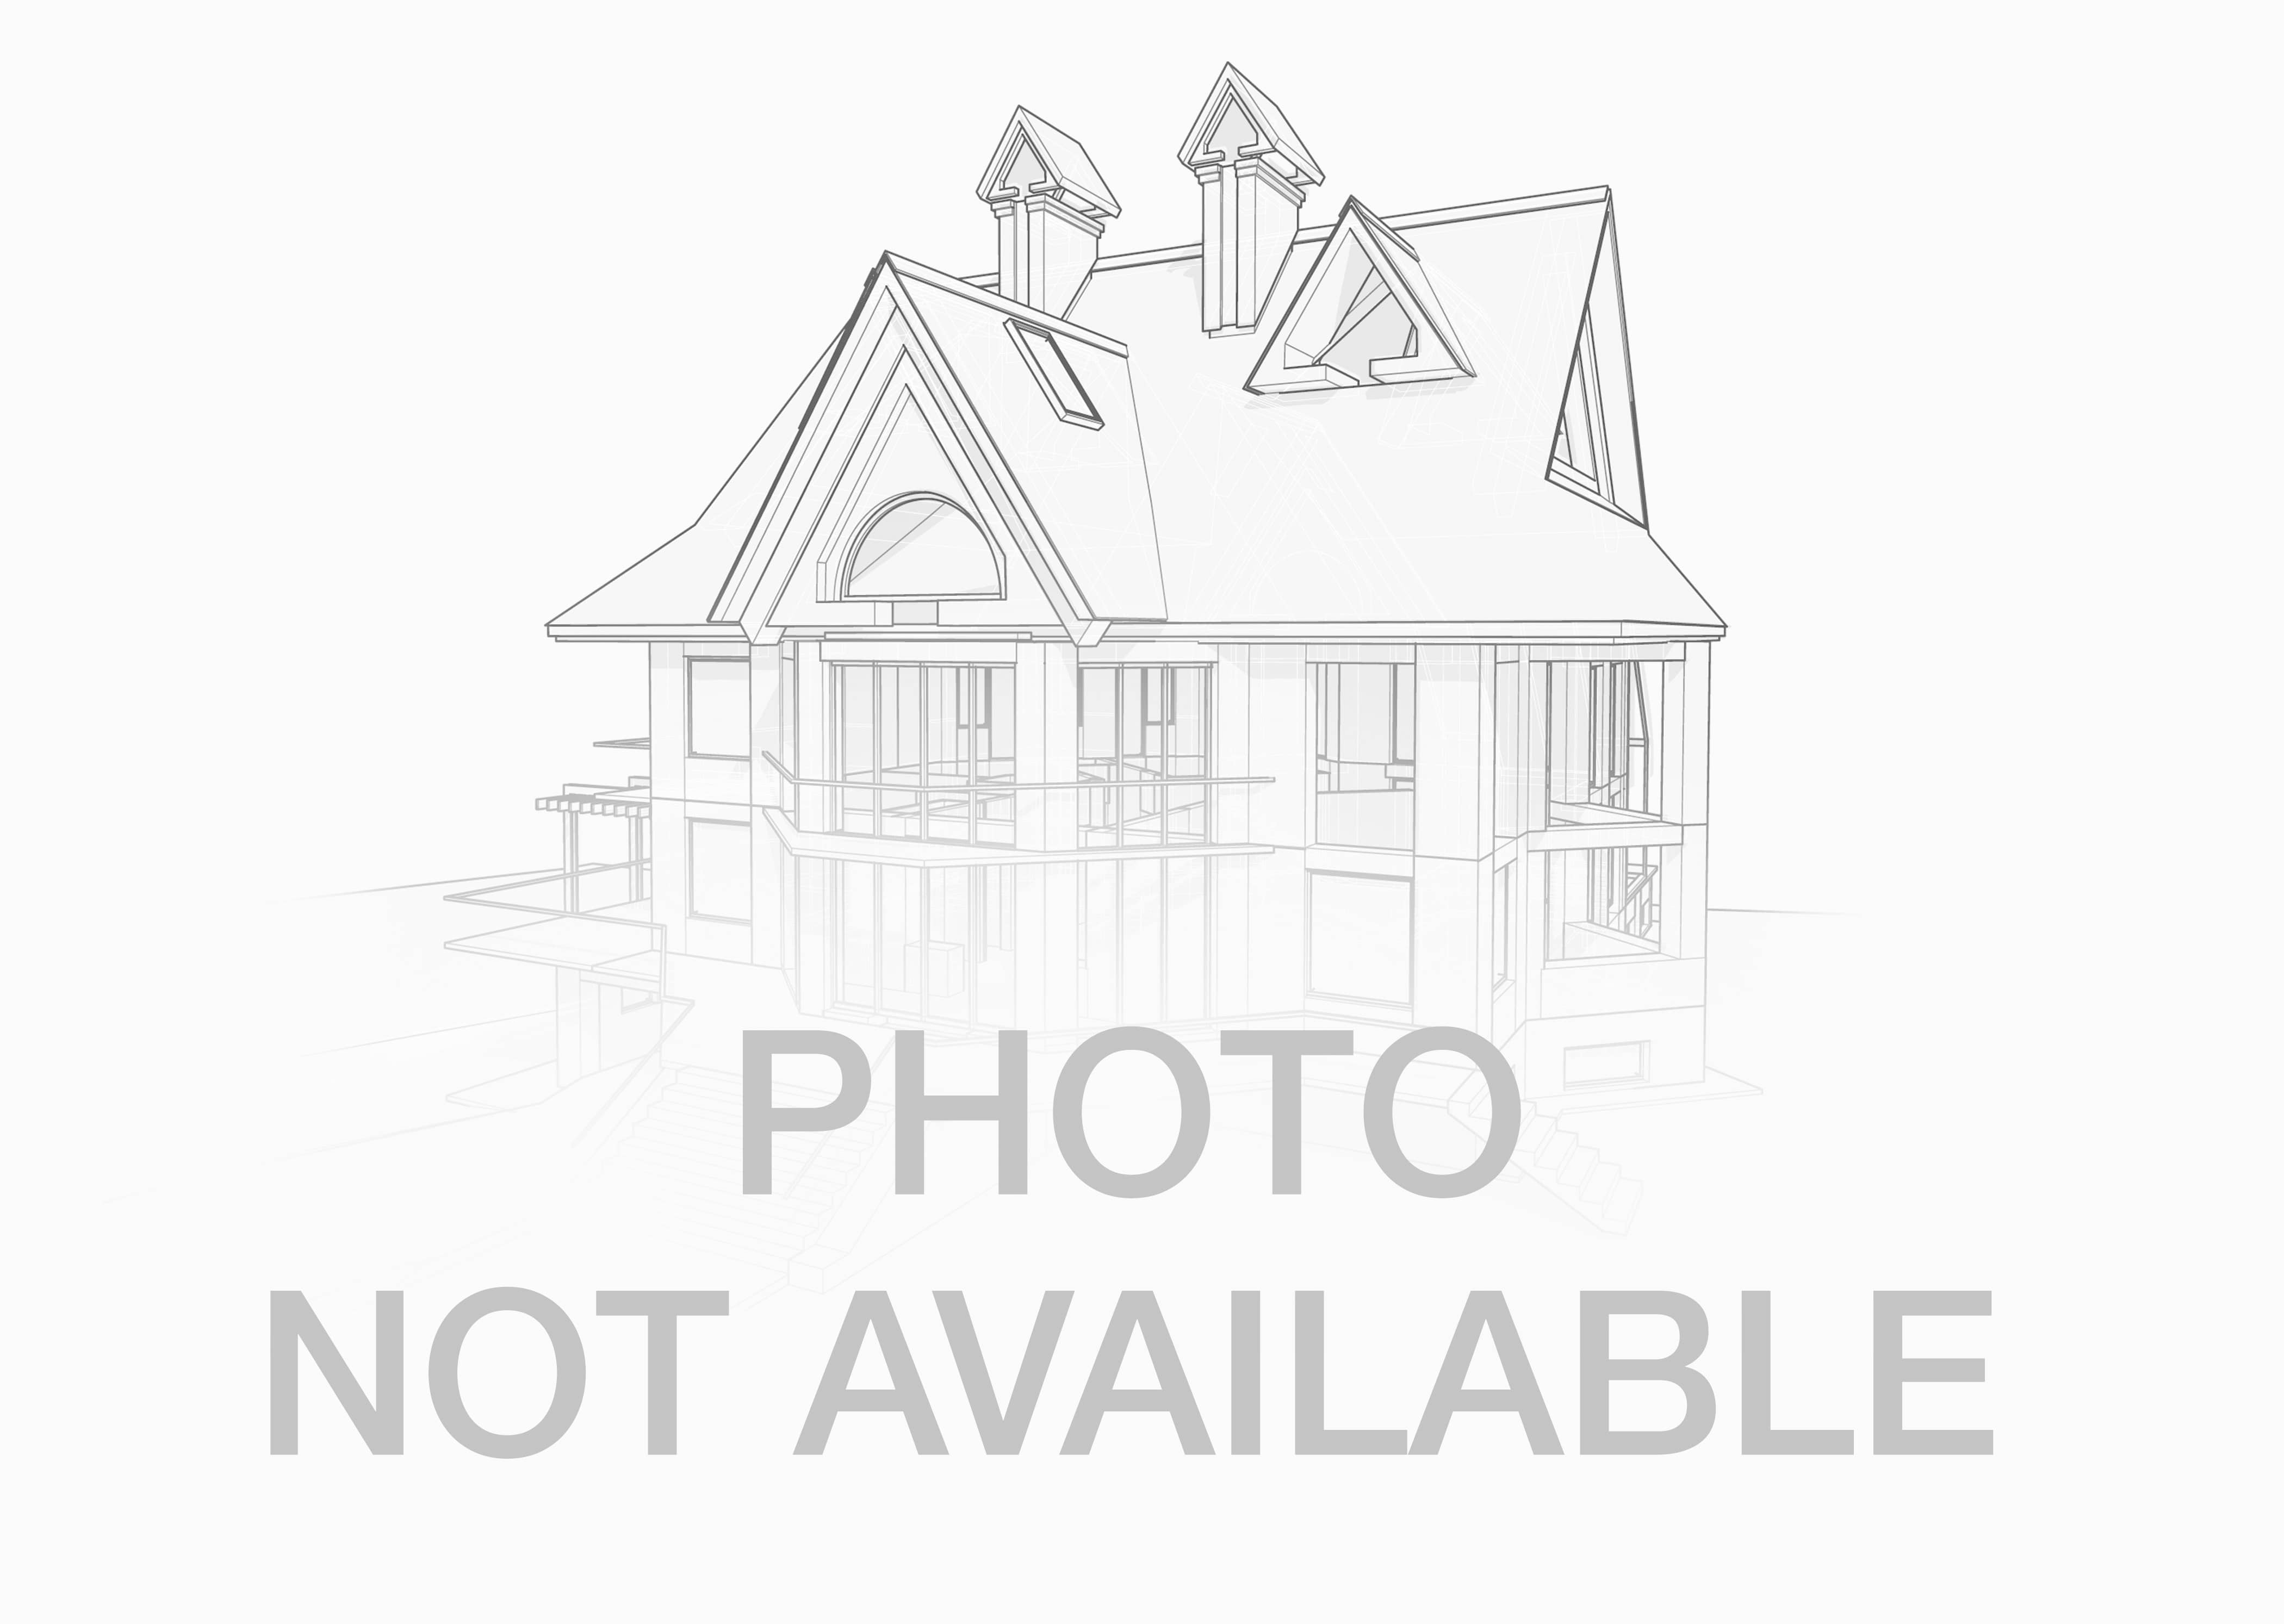 Unspecified Nh Homes For Sale And Real Estate